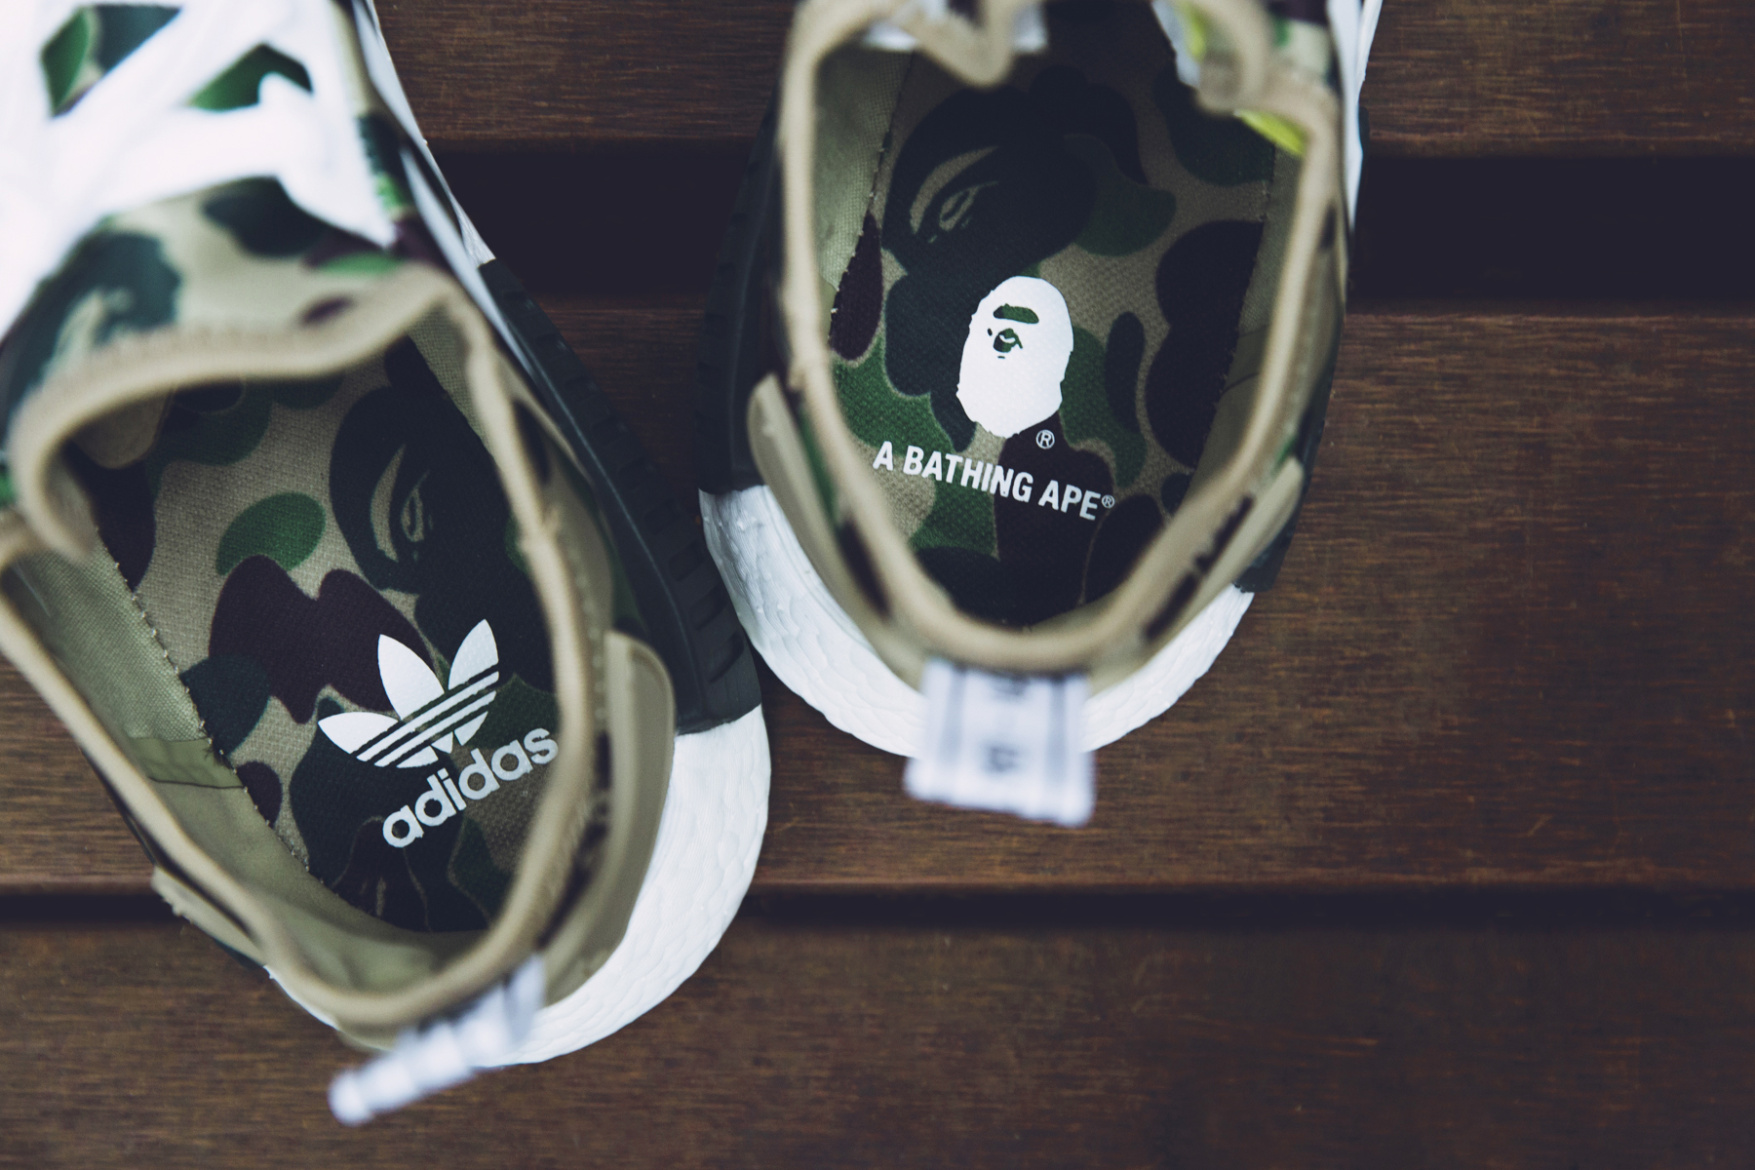 bape-x-adidas-originals-nmd-closer-look-7